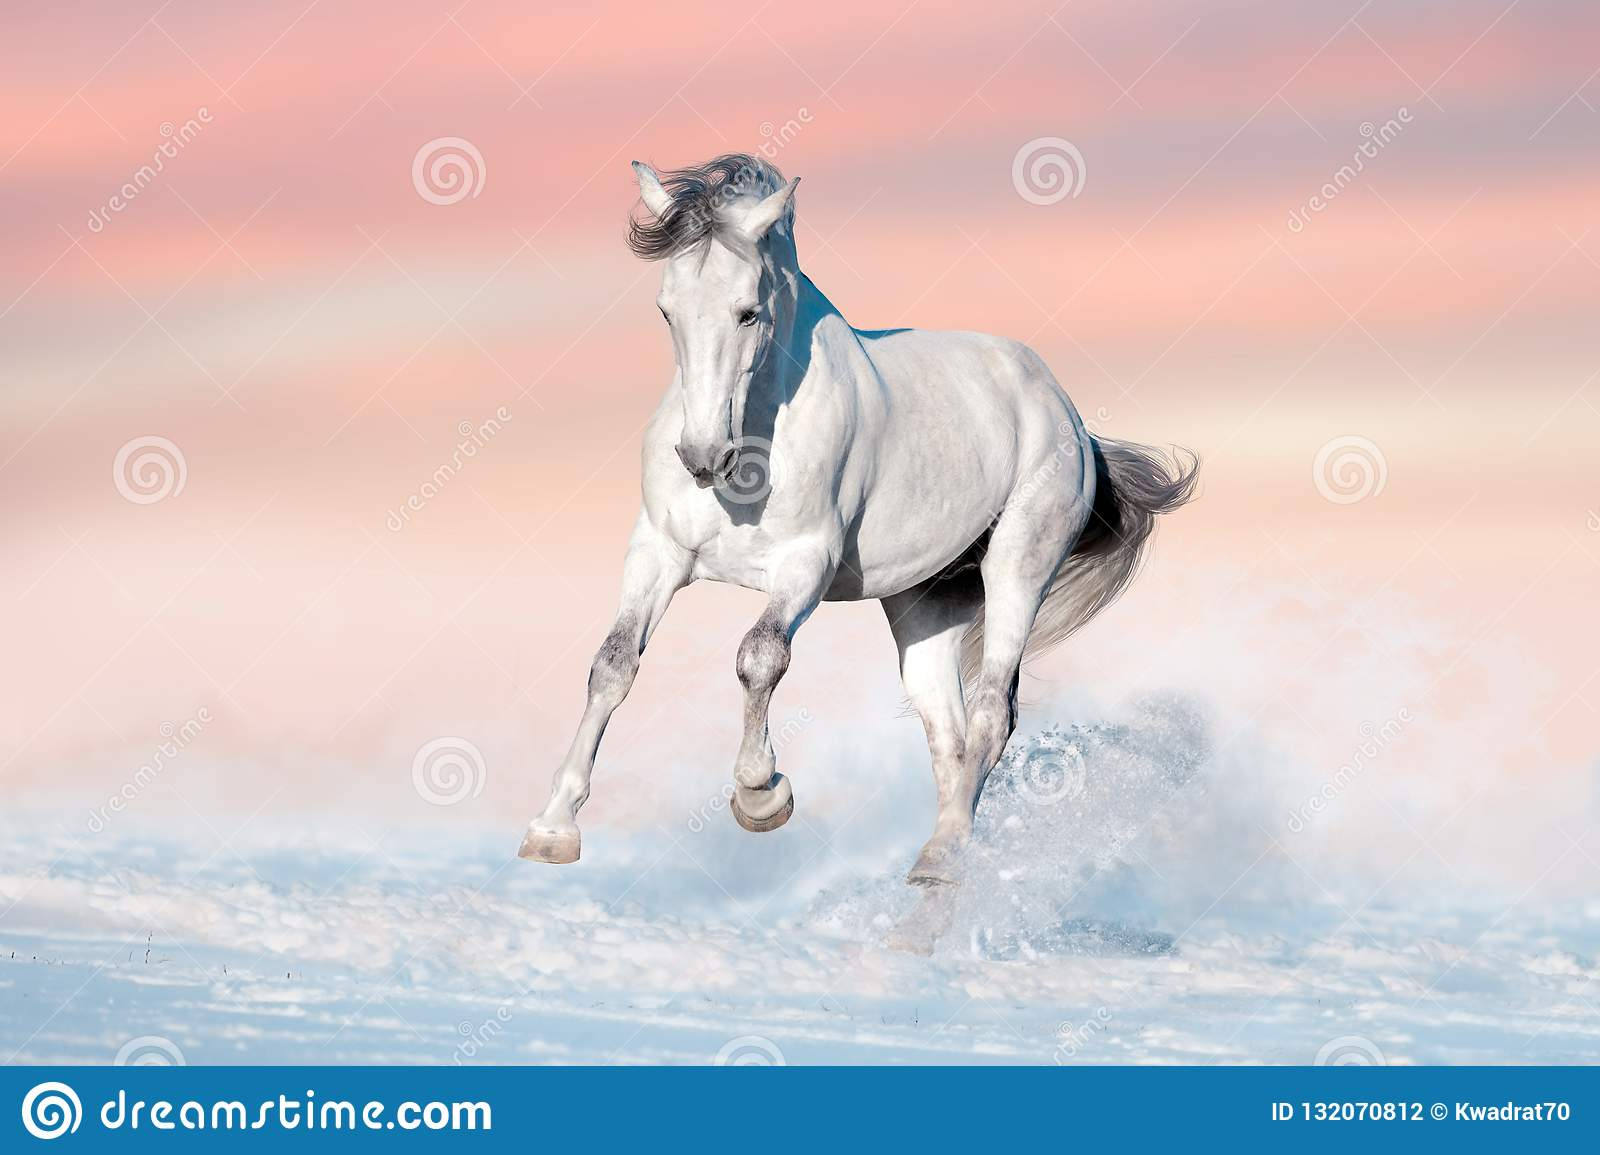 White Horse In Snow Stock Photo Image Of Horse Outdoor 132070812